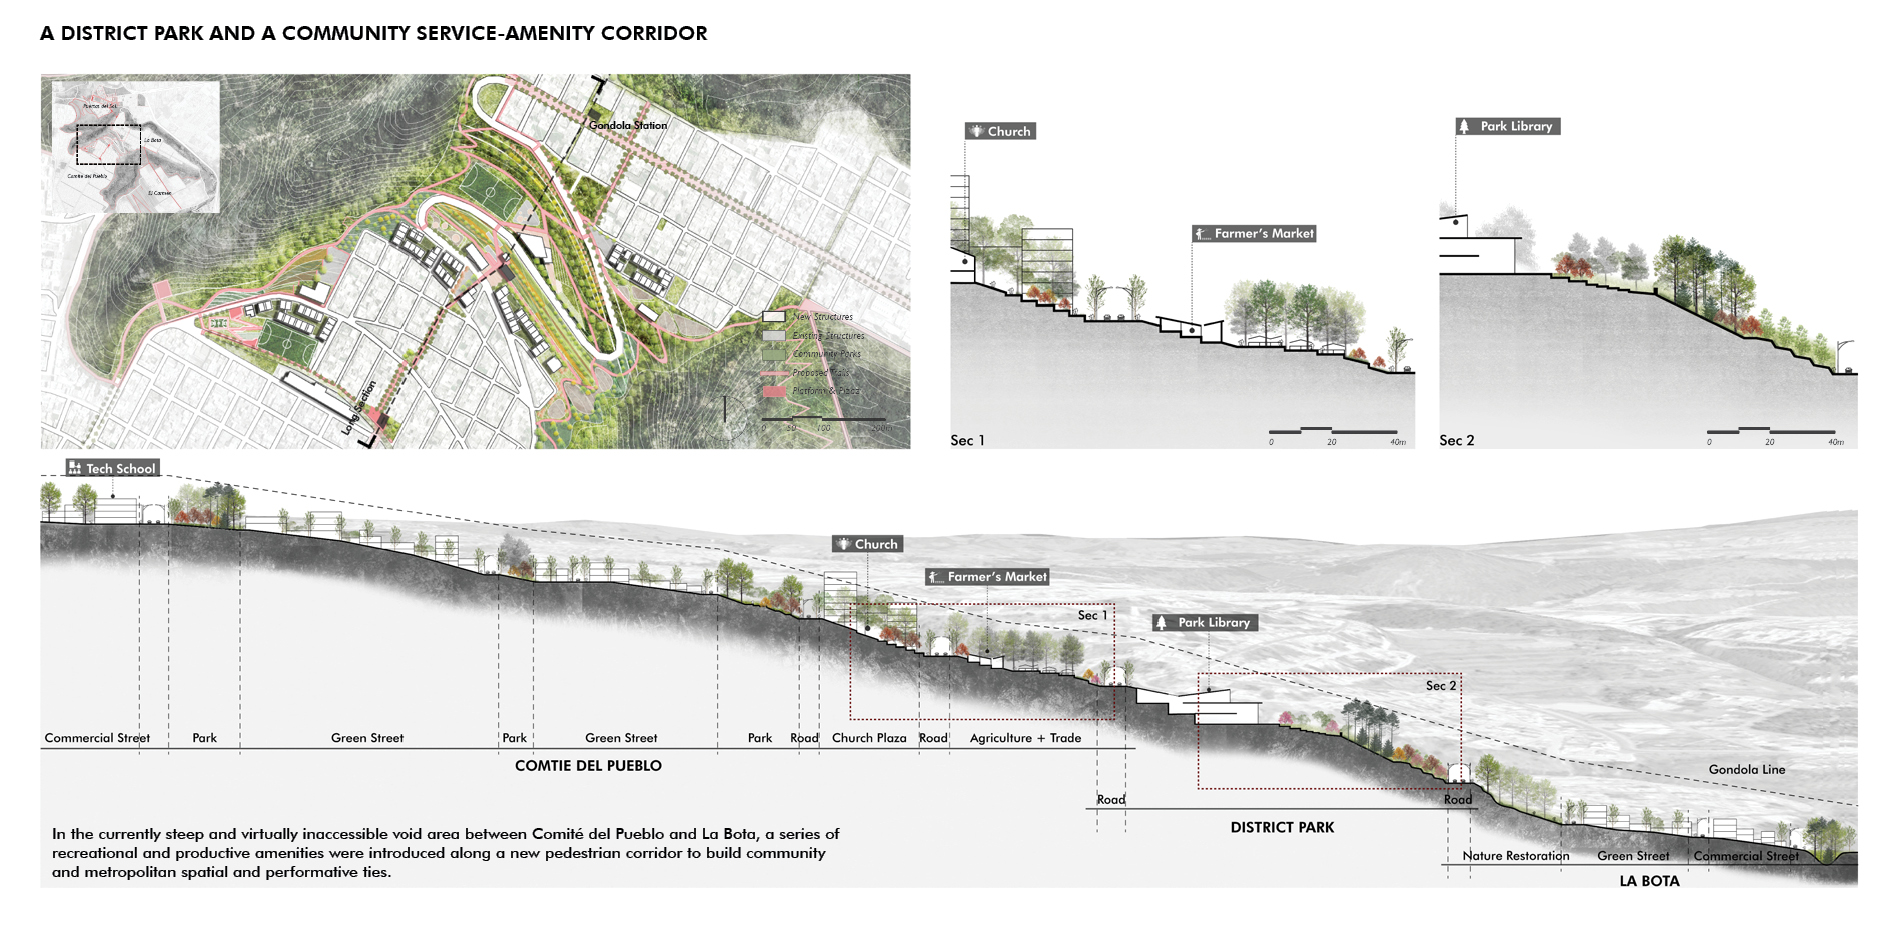 A District Park and a Community Service-Amenity Corridor